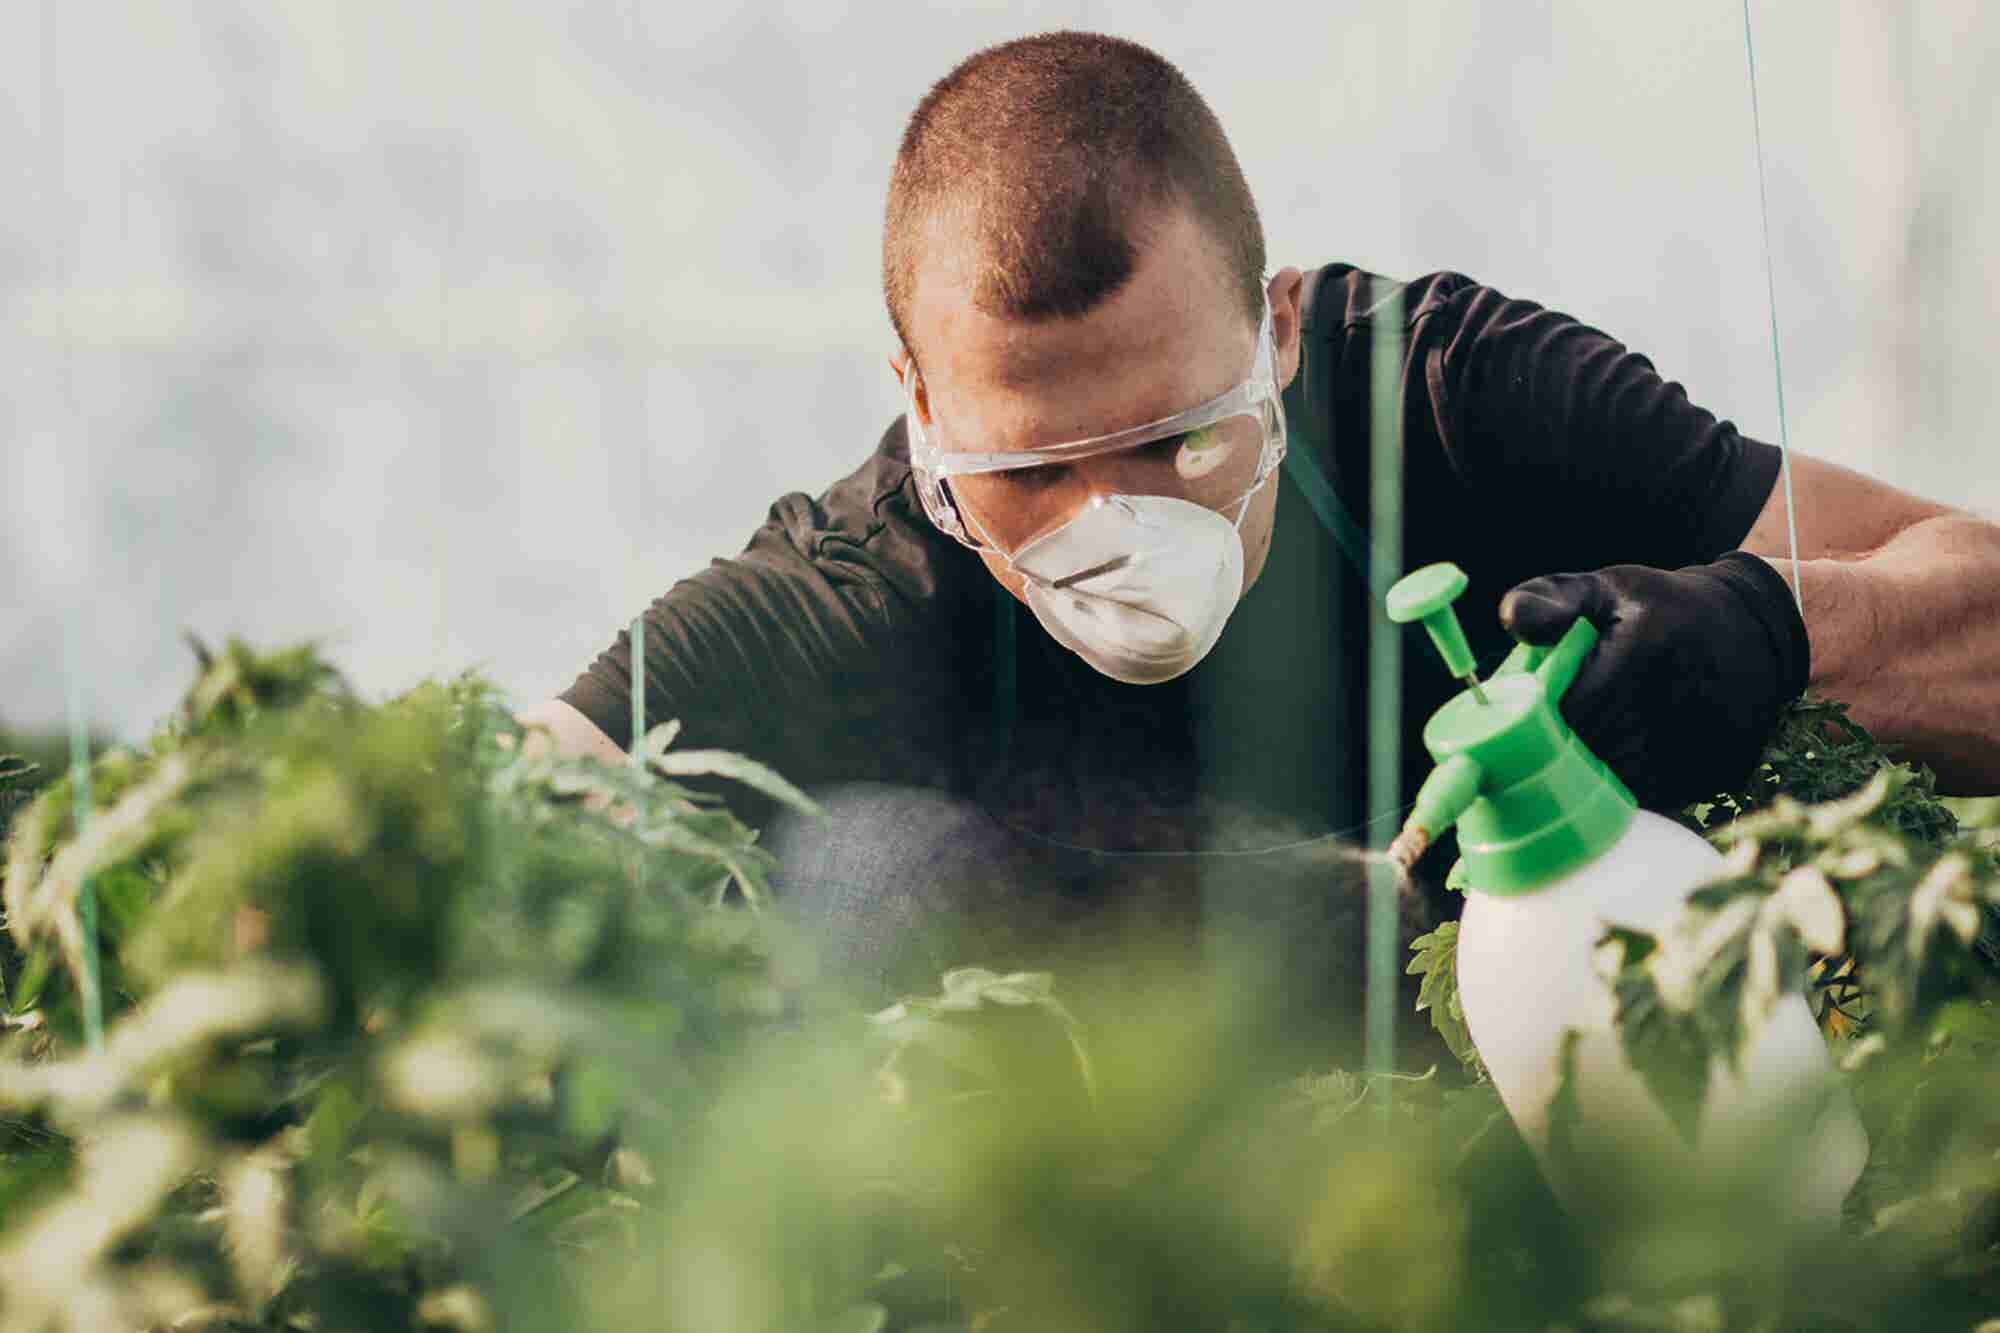 Pesticide Contamination Is a Growing Cannabis Safety Concern